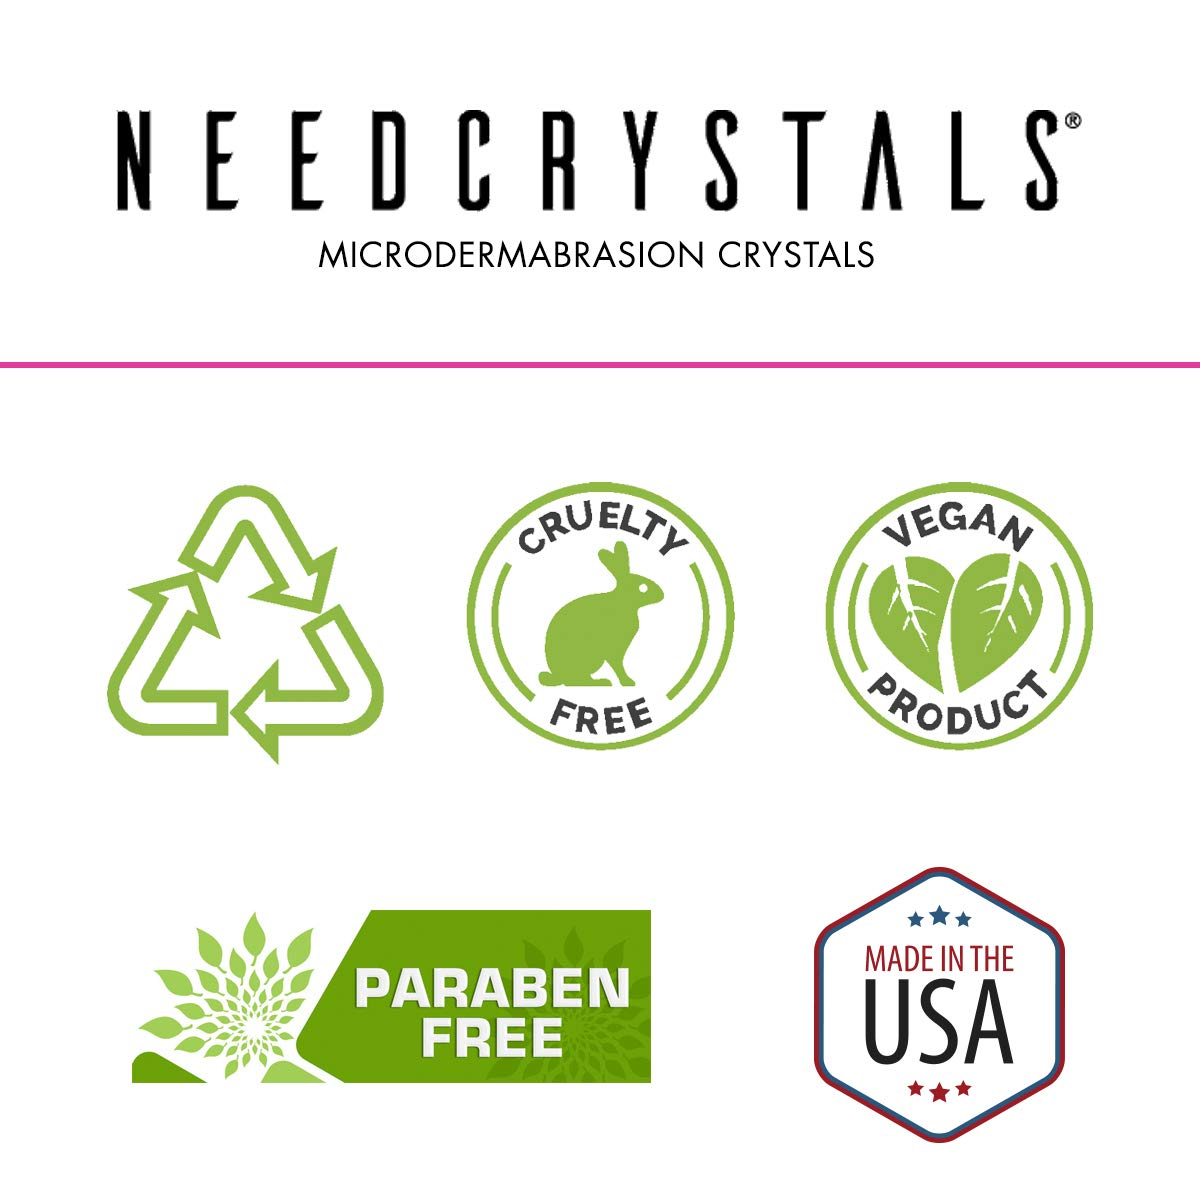 NeedCrystals Microdermabrasion Crystals, DIY Face Scrub with Salicylic Acid. Natural Facial Exfoliator Improves Acne Scars, Blackheads, Pore Size, Blemishes & Skin Texture. 8 oz